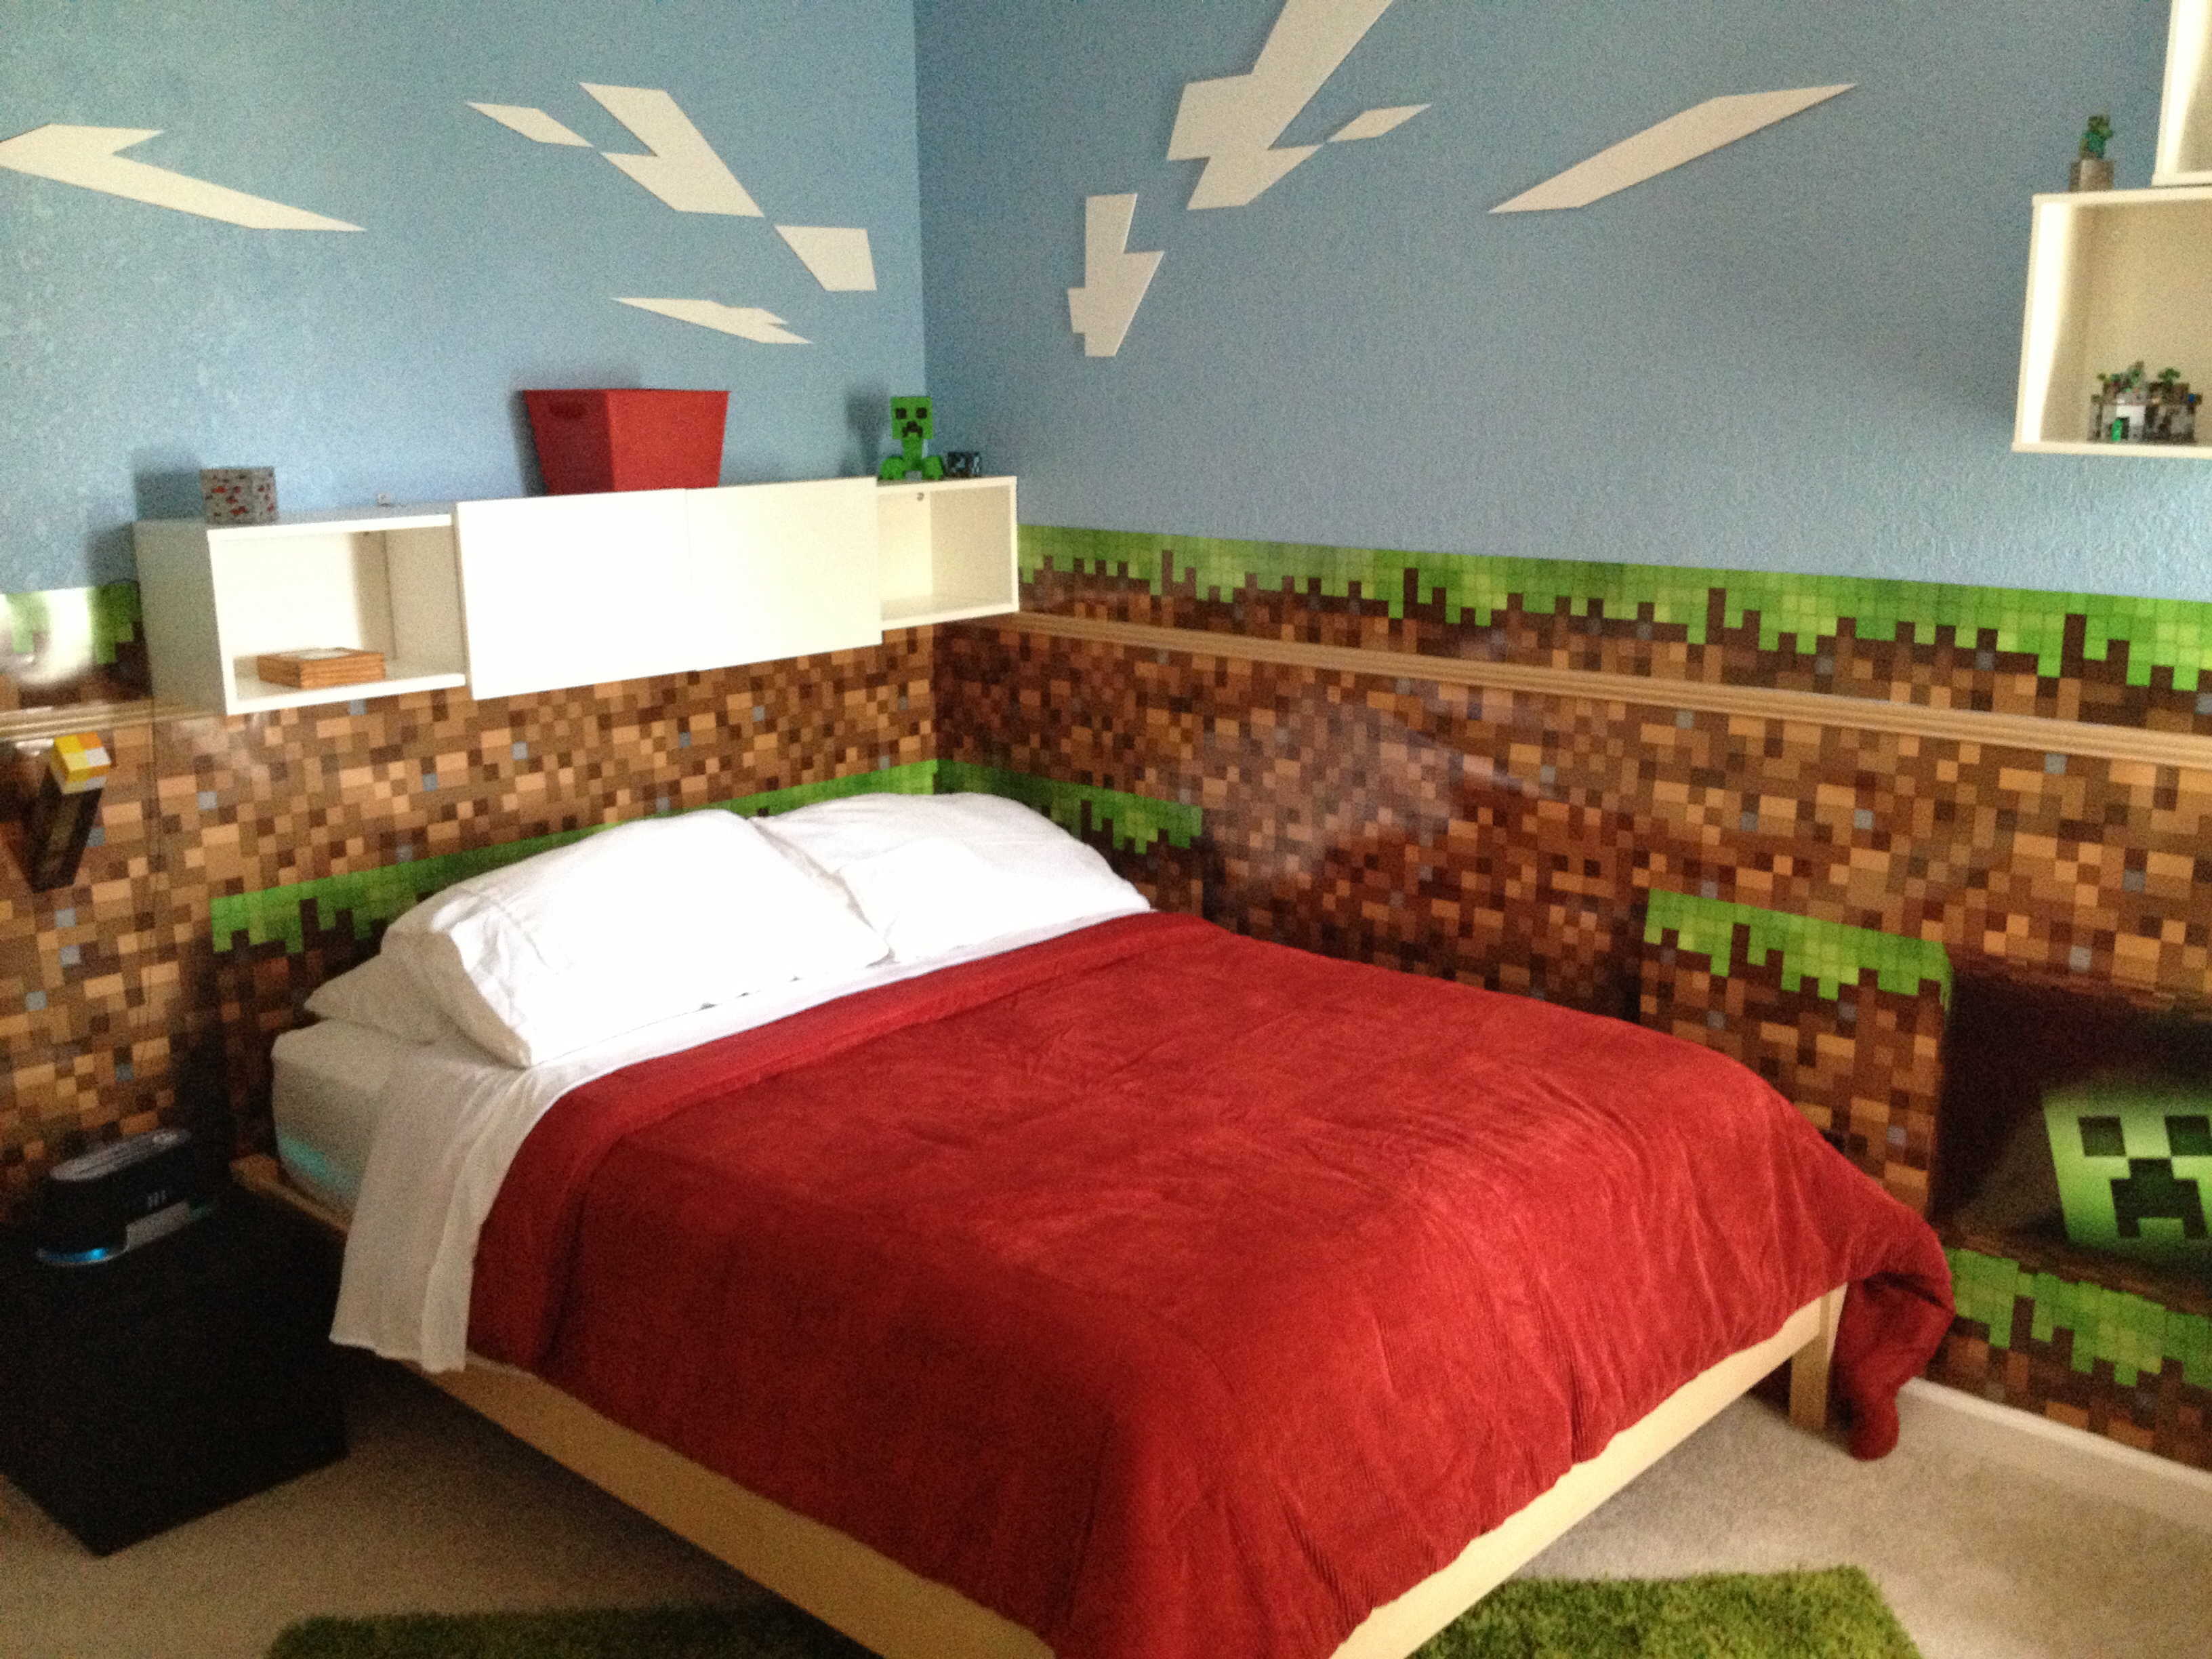 minecraft bedroom wallpaper amazing minecraft bedroom decor ideas mind food 12399